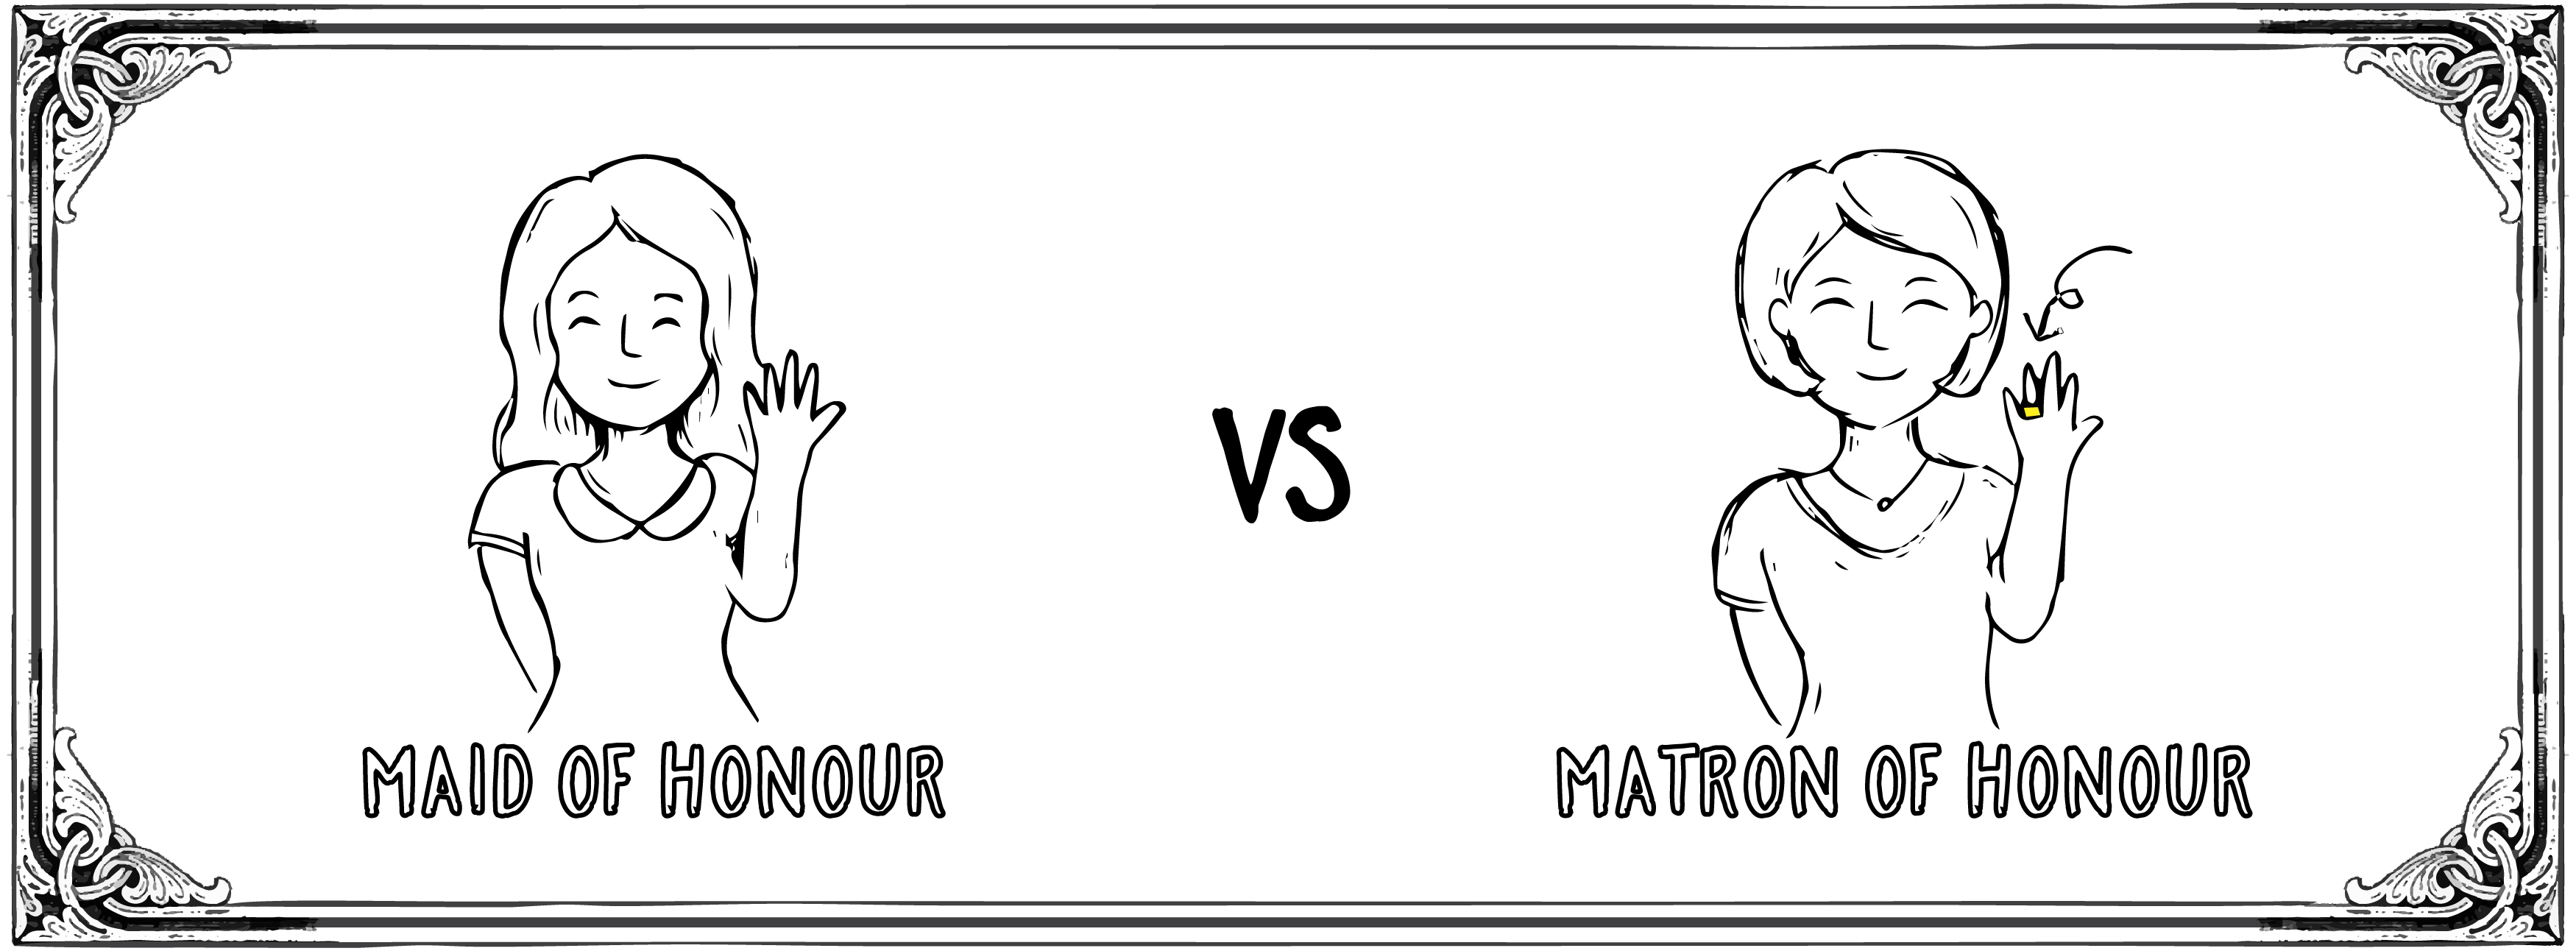 Maid of Honour vs Matron of Honour Miraculove